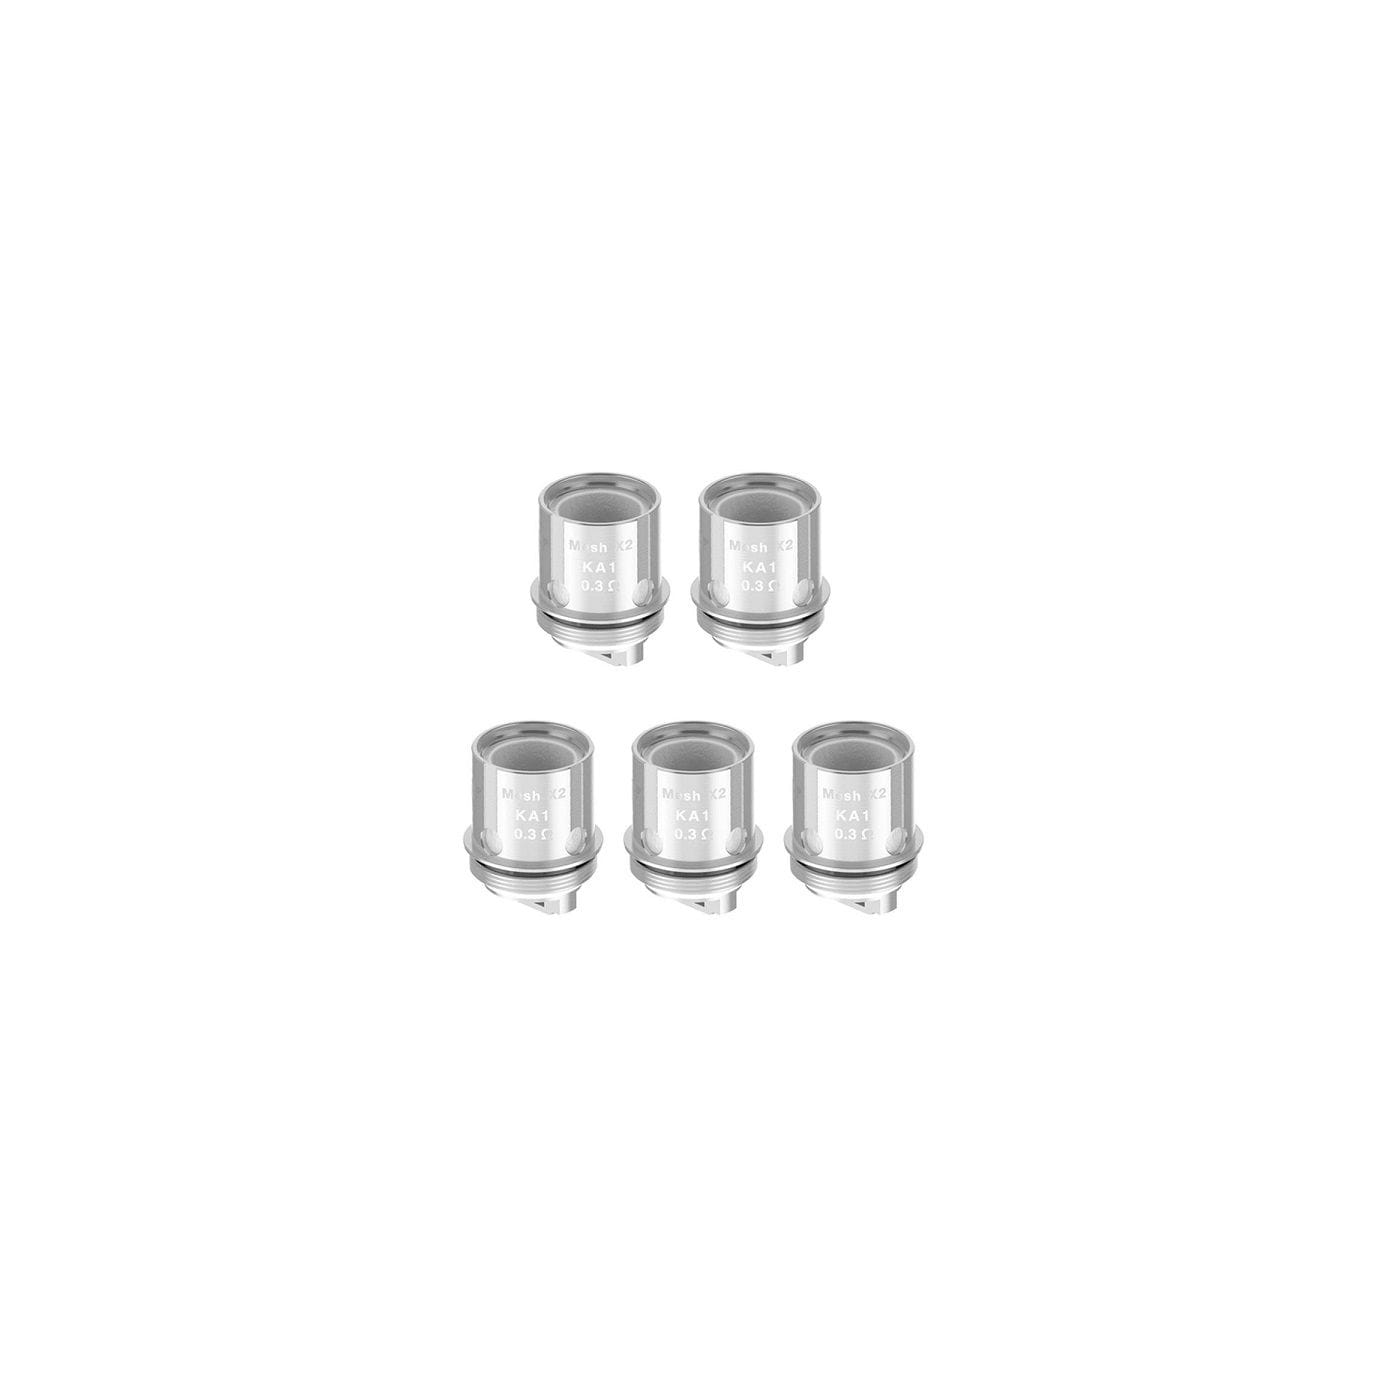 GeekVape Super Mesh X2 Replacement Coil - 5 Pack